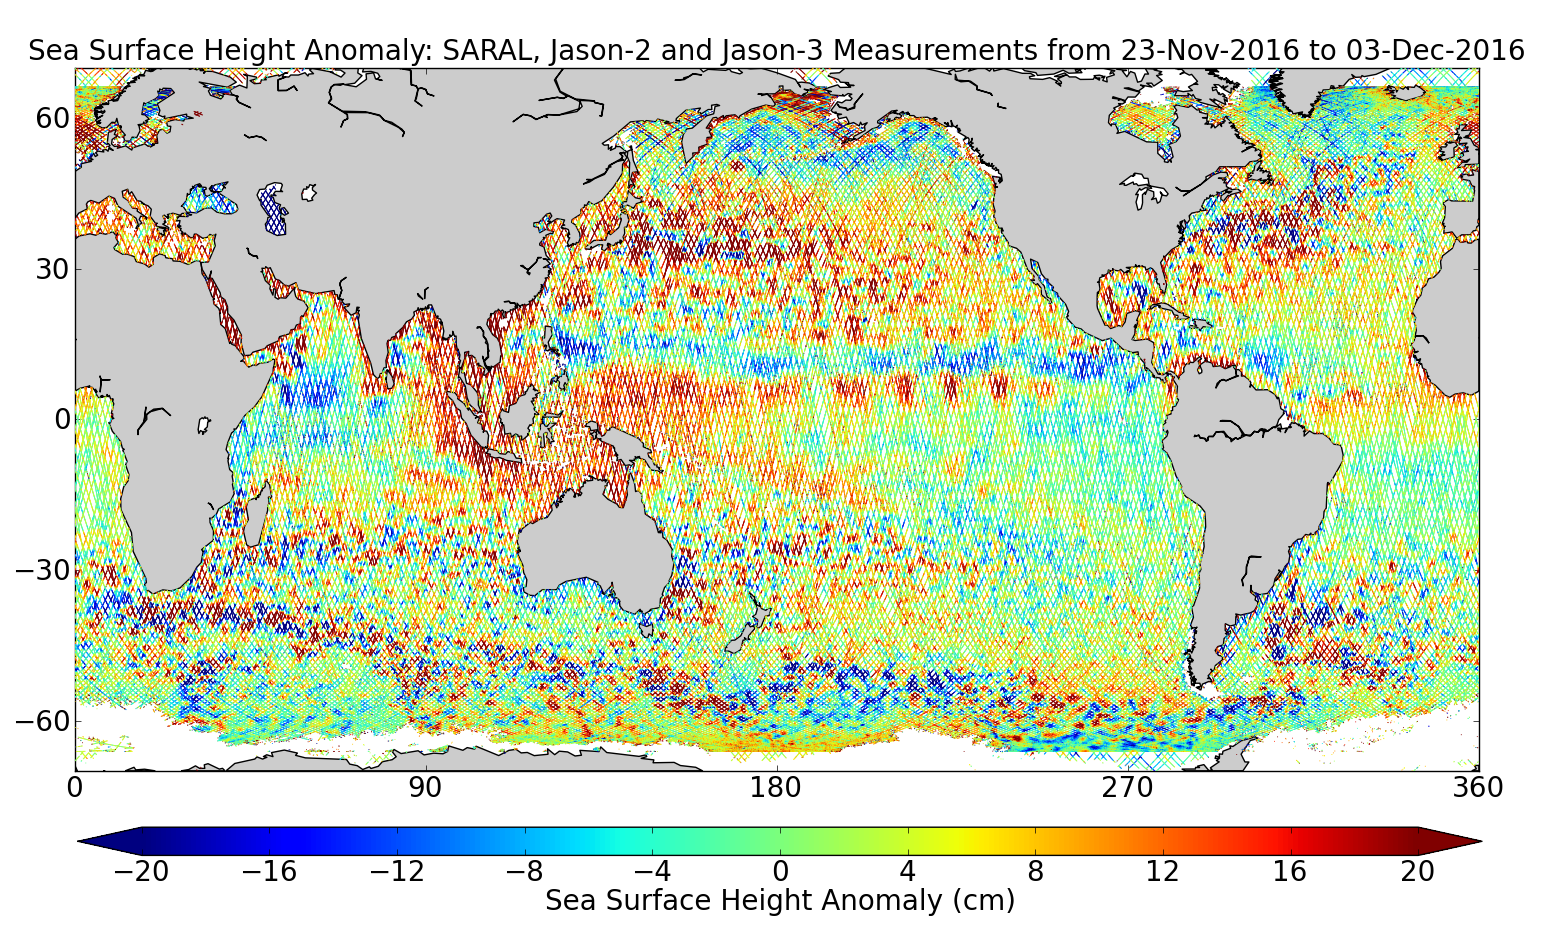 Sea Surface Height Anomaly: SARAL, Jason-2 and Jason-3 Measurements from 23-Nov-2016 to 03-Dec-2016